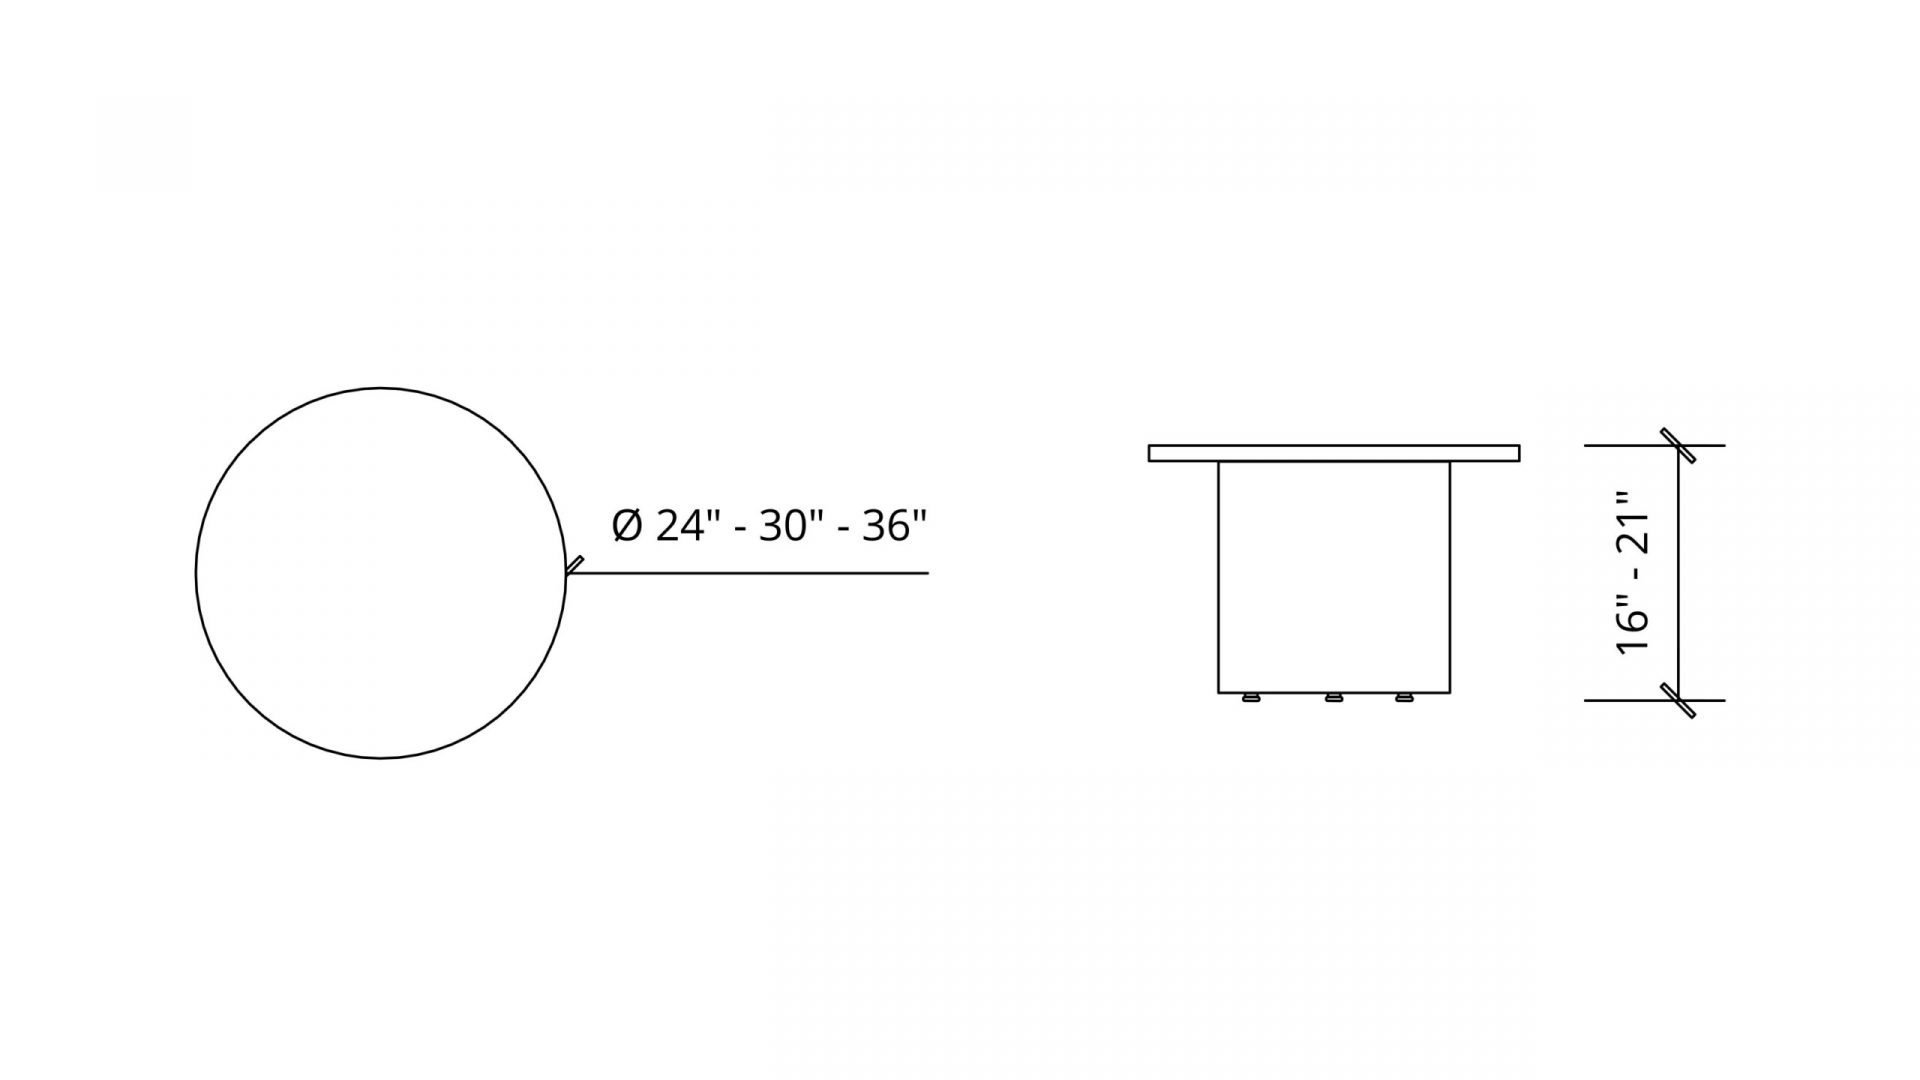 Dimensions of Round Coffee Table with X-Base 1641